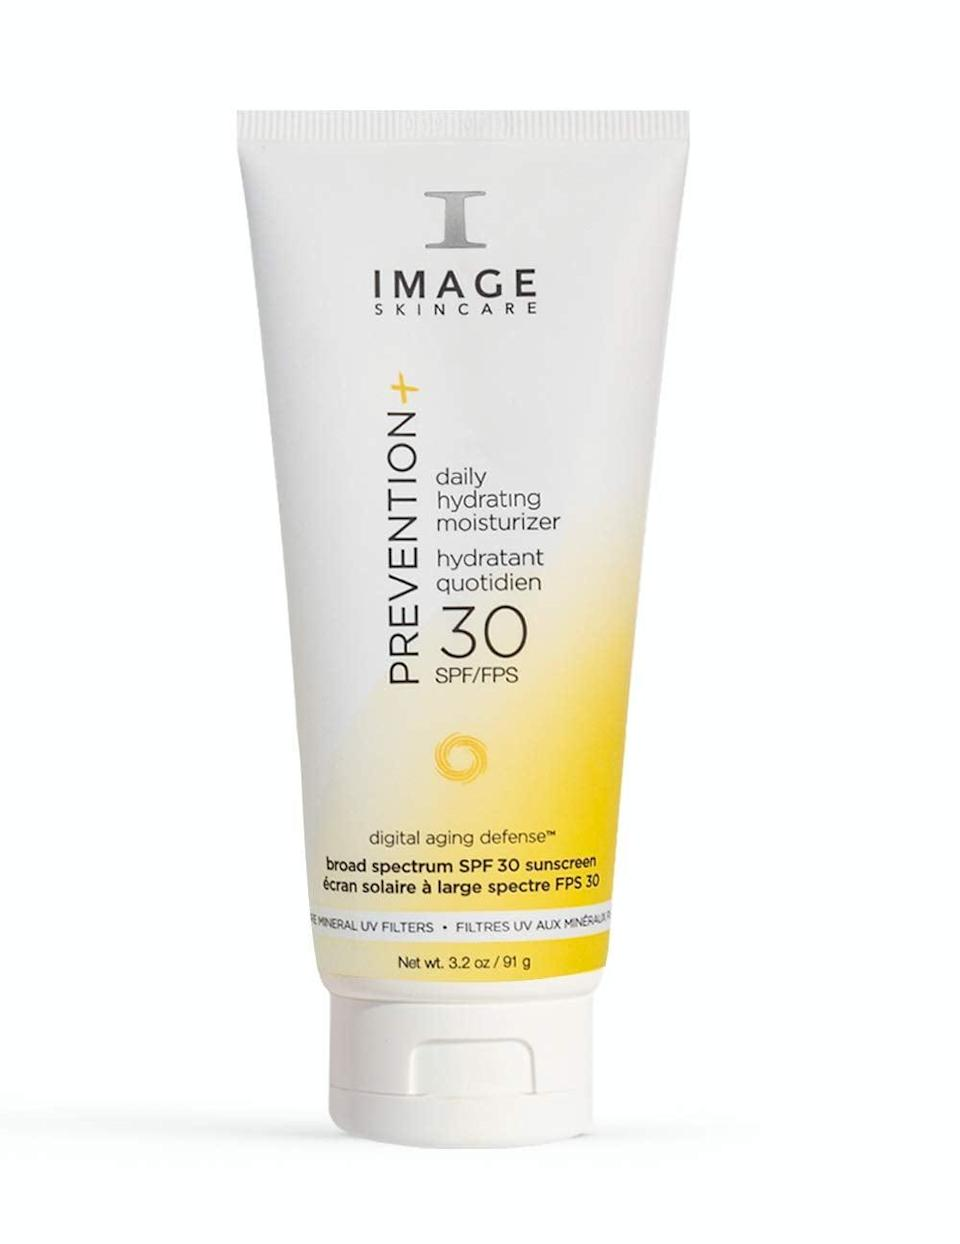 """<p>""""I randomly pocketed the <a href=""""https://www.popsugar.com/buy/Image-Skincare-Prevention-Daily-Hydrating-Moisturizer-SPF-30-585487?p_name=Image%20Skincare%20Prevention%2B%20Daily%2C%20Hydrating%20Moisturizer%20SPF%2030%2B&retailer=amazon.com&pid=585487&price=44&evar1=bella%3Aus&evar9=47580543&evar98=https%3A%2F%2Fwww.popsugar.com%2Fbeauty%2Fphoto-gallery%2F47580543%2Fimage%2F47581048%2FImage-Skincare-Prevention-Daily-Hydrating-Moisturizer-SPF-30&list1=beauty%20products%2Csunscreen%2Ceditors%20pick%2Csummer%2Cskin%20care&prop13=mobile&pdata=1"""" class=""""link rapid-noclick-resp"""" rel=""""nofollow noopener"""" target=""""_blank"""" data-ylk=""""slk:Image Skincare Prevention+ Daily, Hydrating Moisturizer SPF 30+"""">Image Skincare Prevention+ Daily, Hydrating Moisturizer SPF 30+</a> ($44) during a beauty sale at a past job and it surprisingly turned out to be one of the best skin-care decisions I've ever made. This sunscreen is thick, creamy, and hydrating, but it doesn't feel super thick on my skin. As a bonus, it also doesn't leave behind a white residue, a common issue people of color tend to deal with when using sunscreens."""" - Danielle Jackson, assistant beauty editor</p>"""